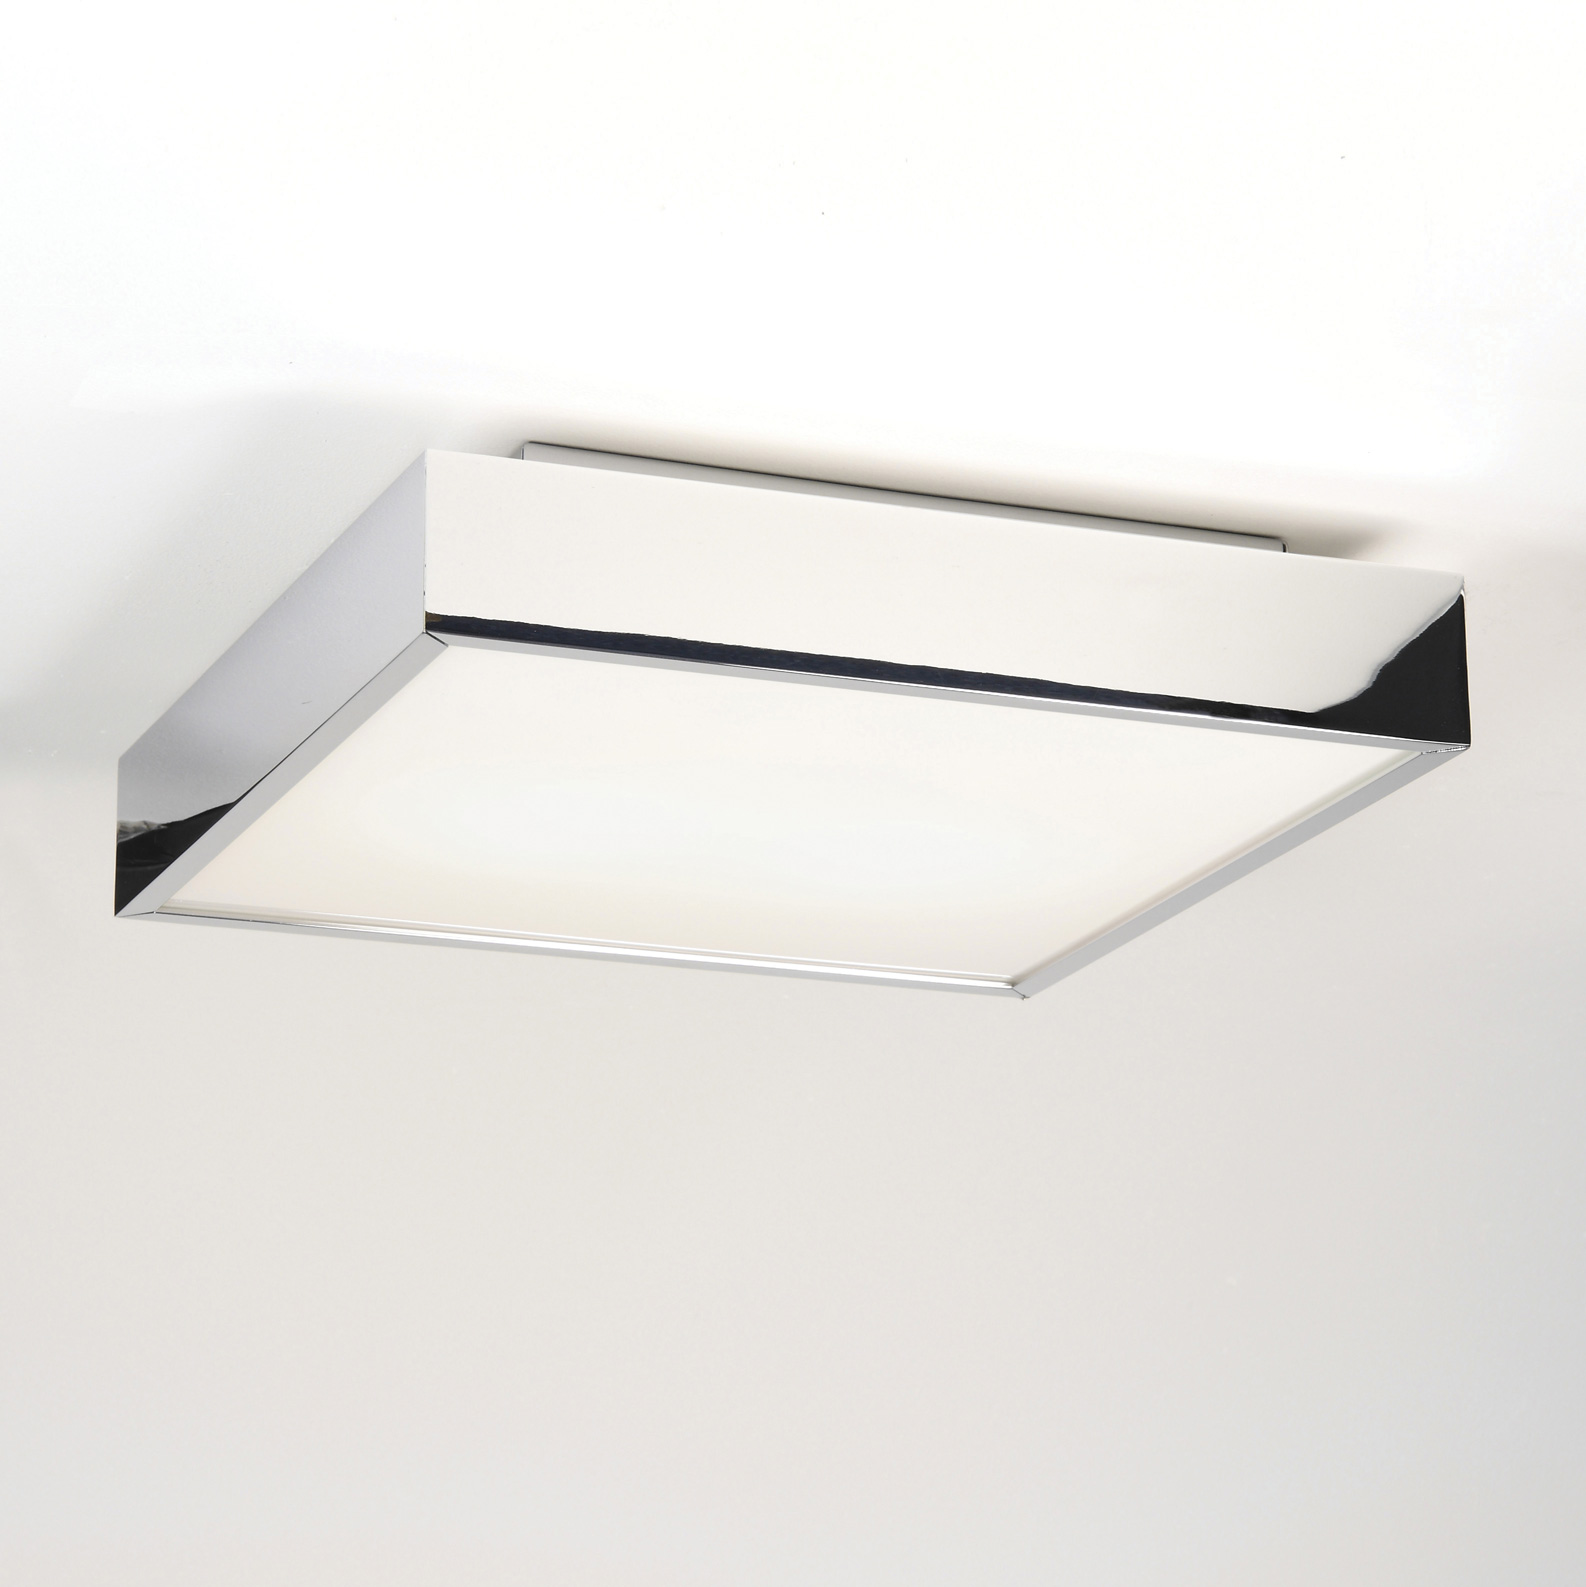 square bathroom ceiling light. sentinel astro taketa 7159 led square bathroom ceiling light 177w polished chrome ip44 r